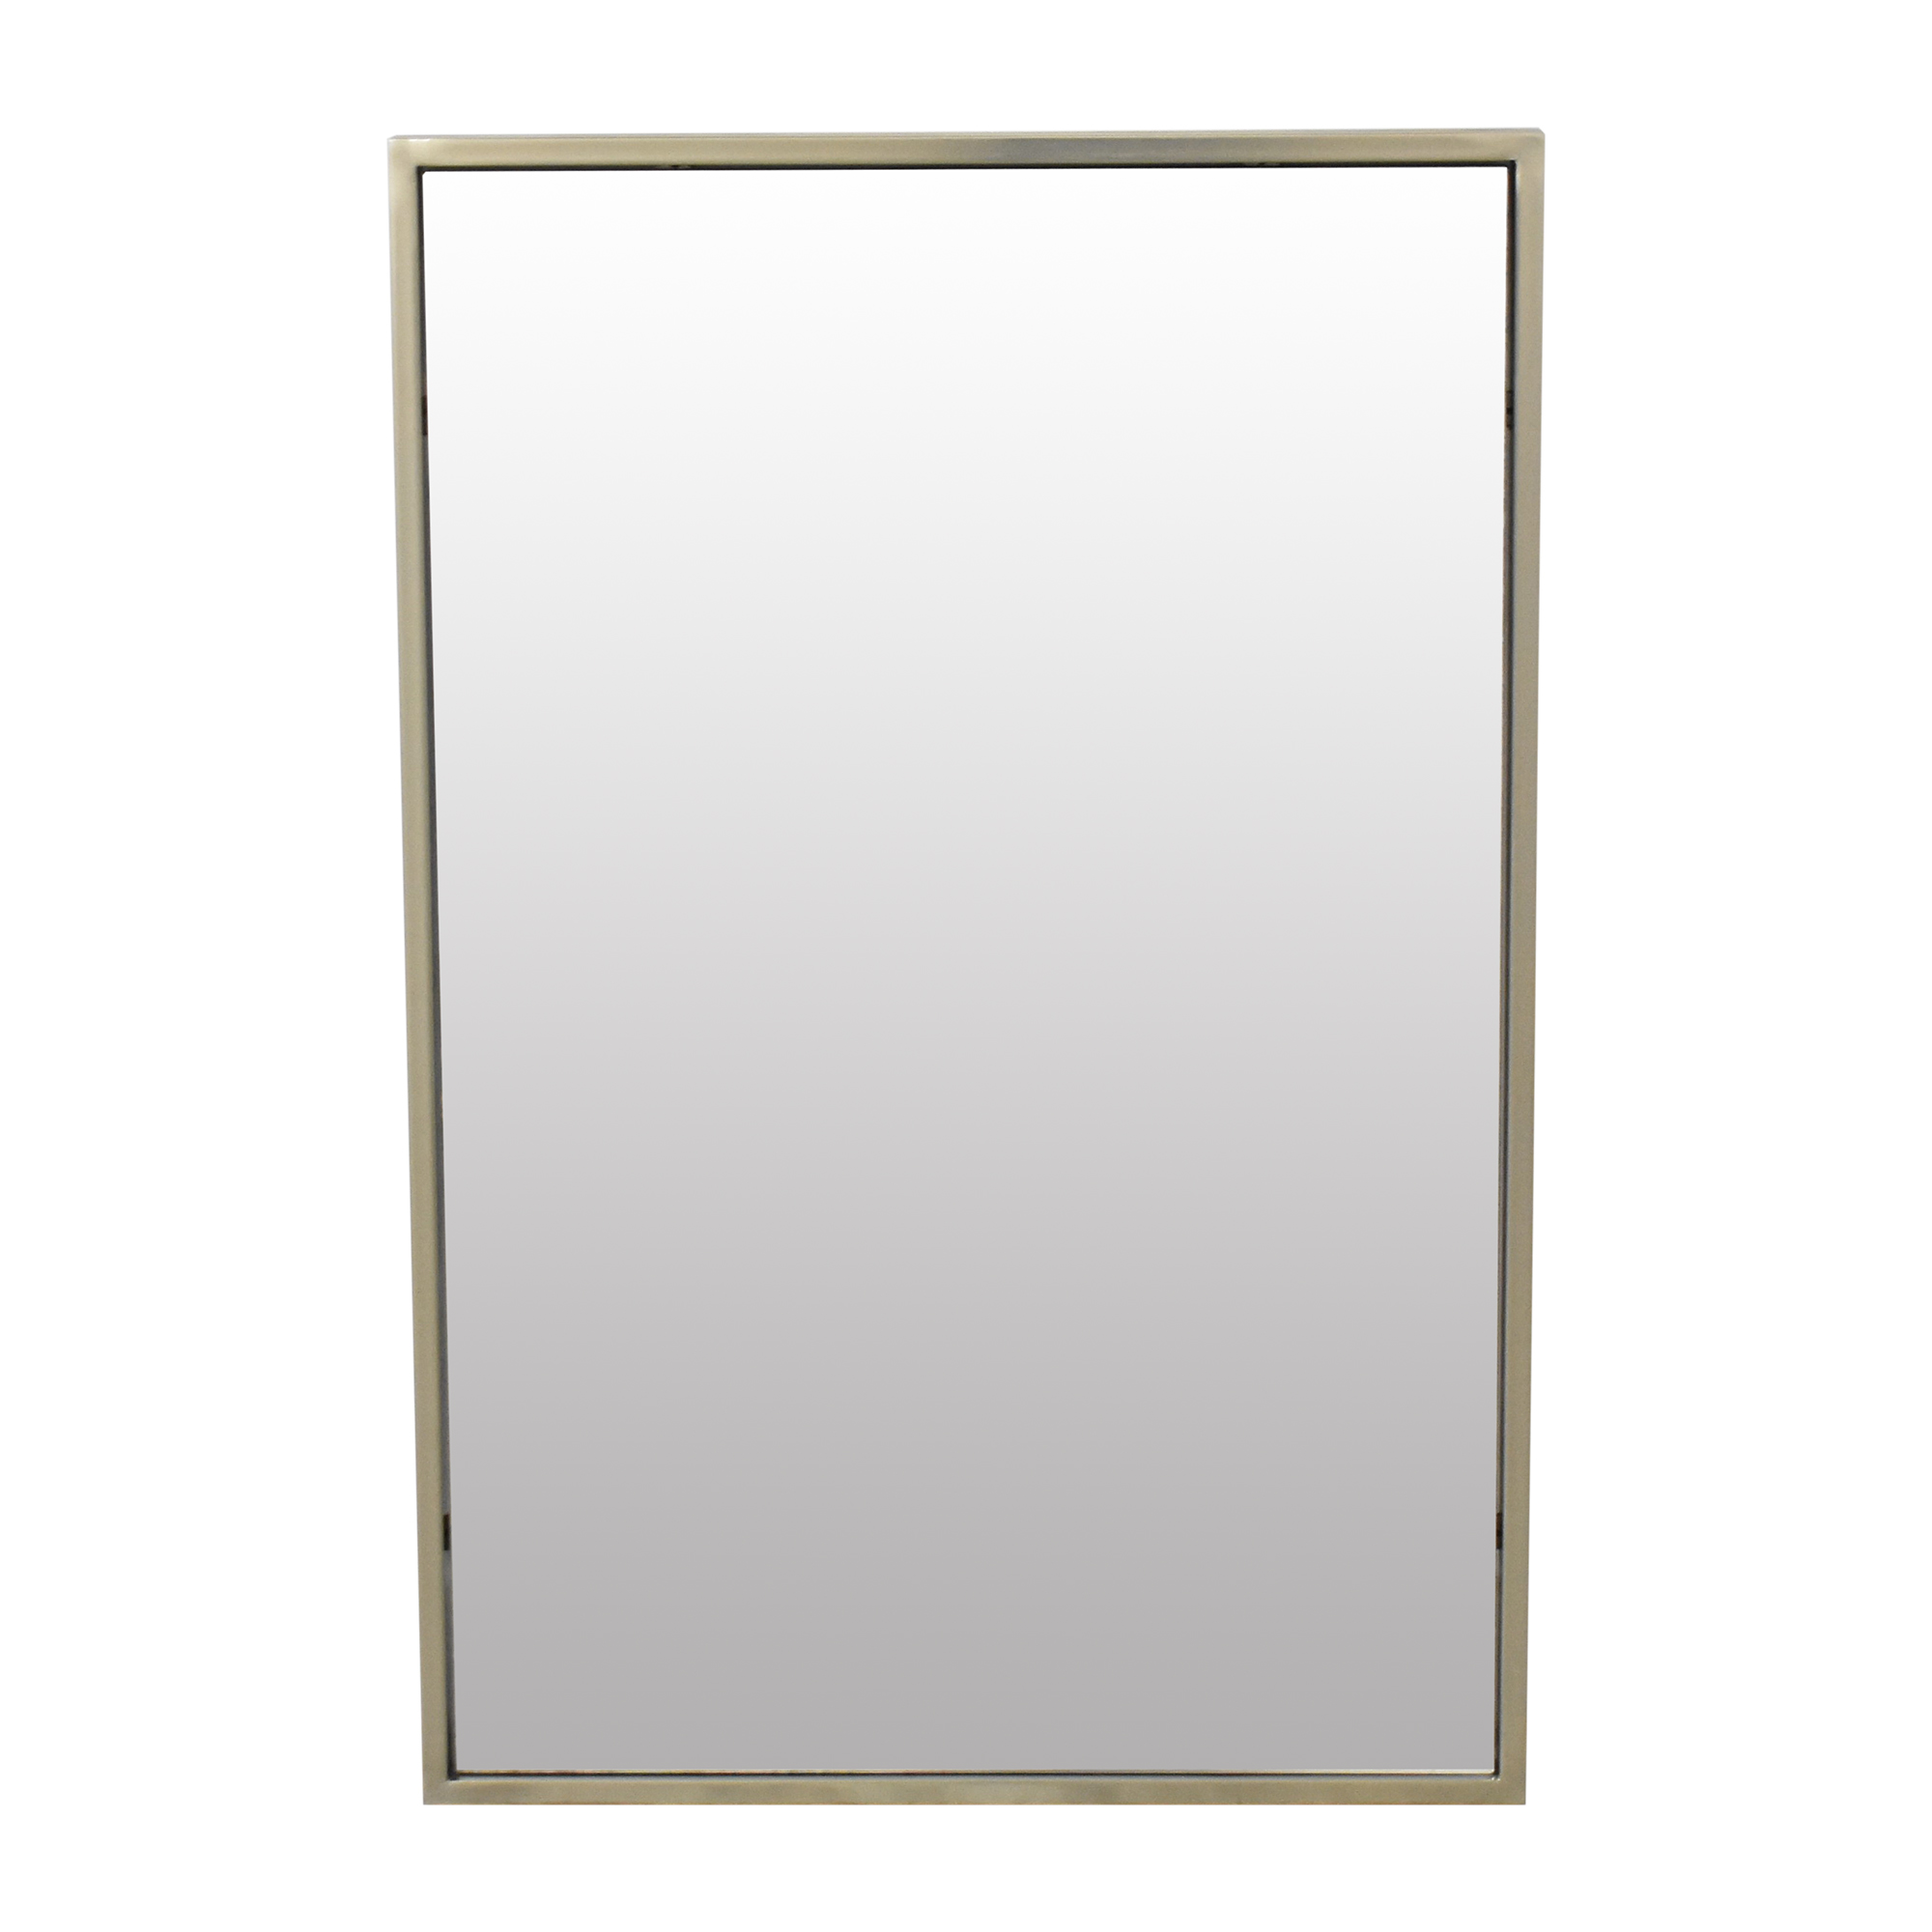 West Elm West Elm Framed Wall Mirror nj